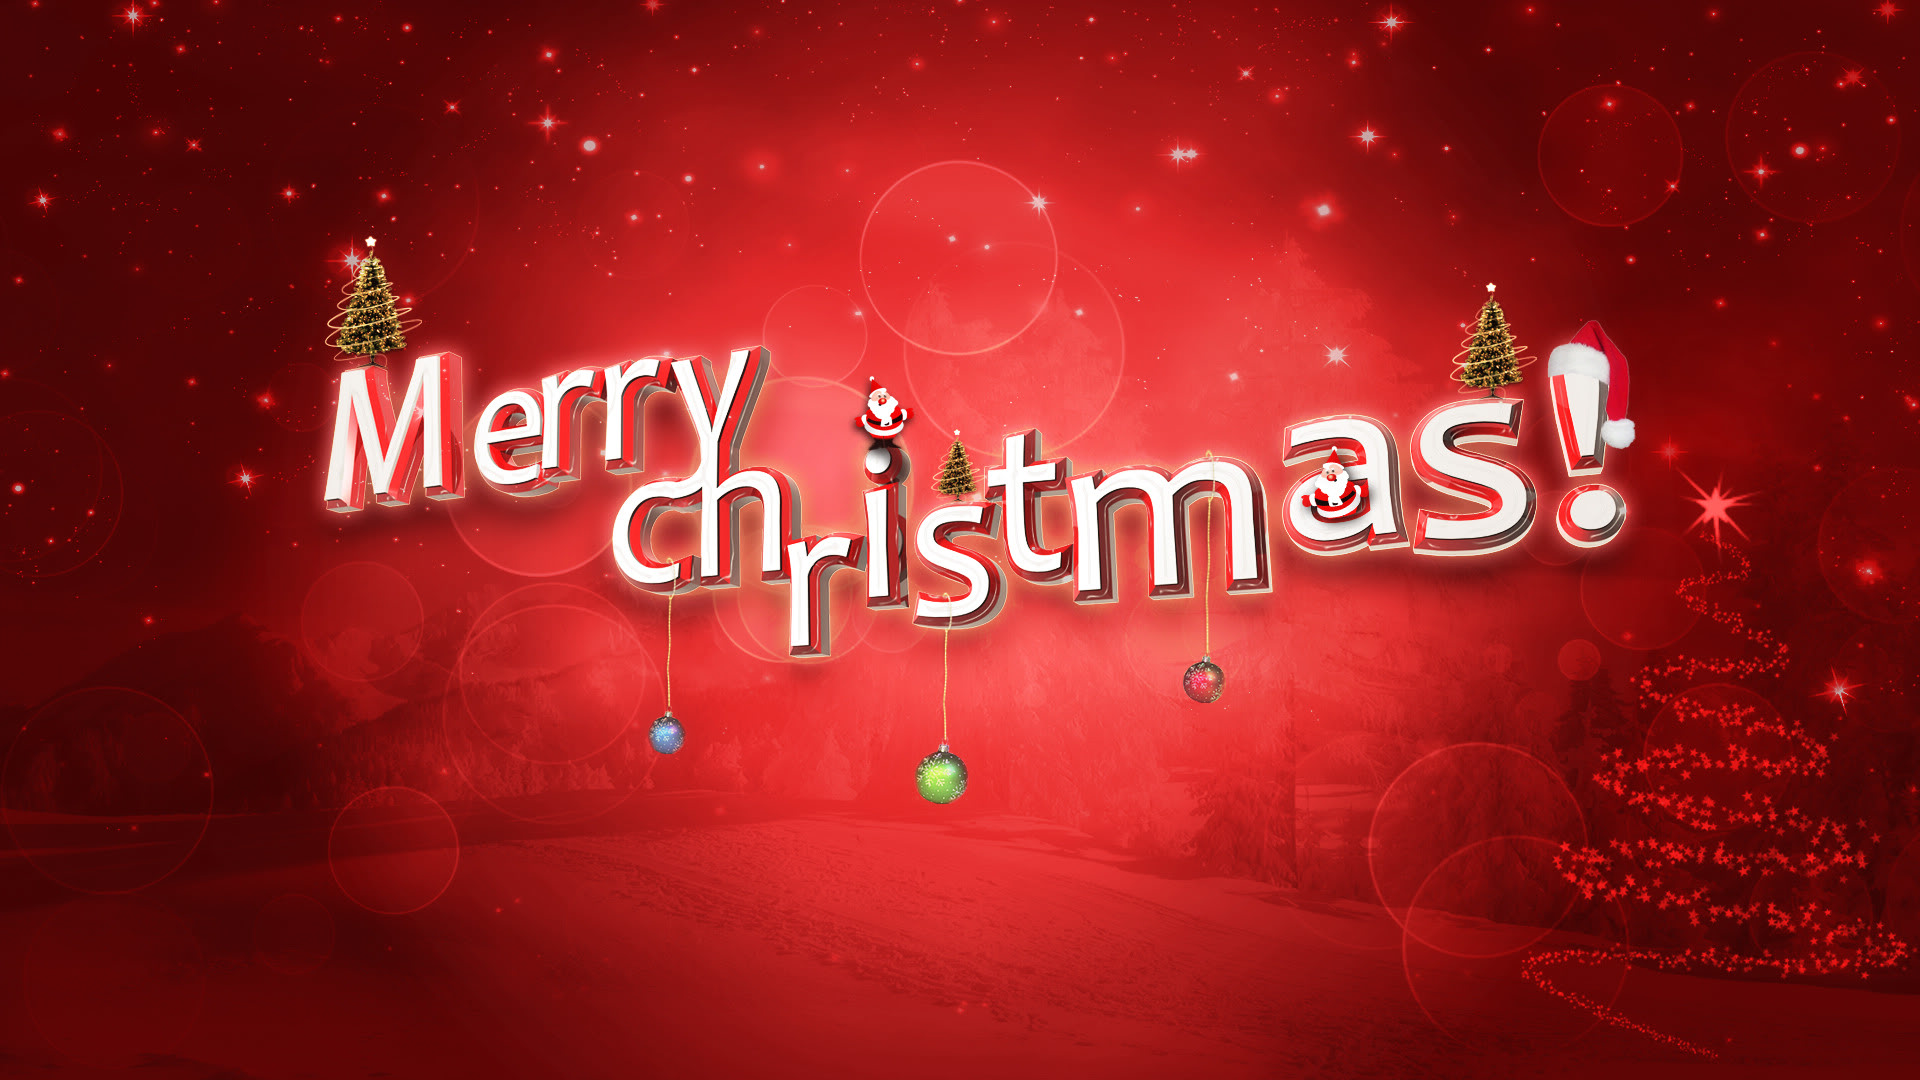 wishes greetings merry christmas wallpaper hd